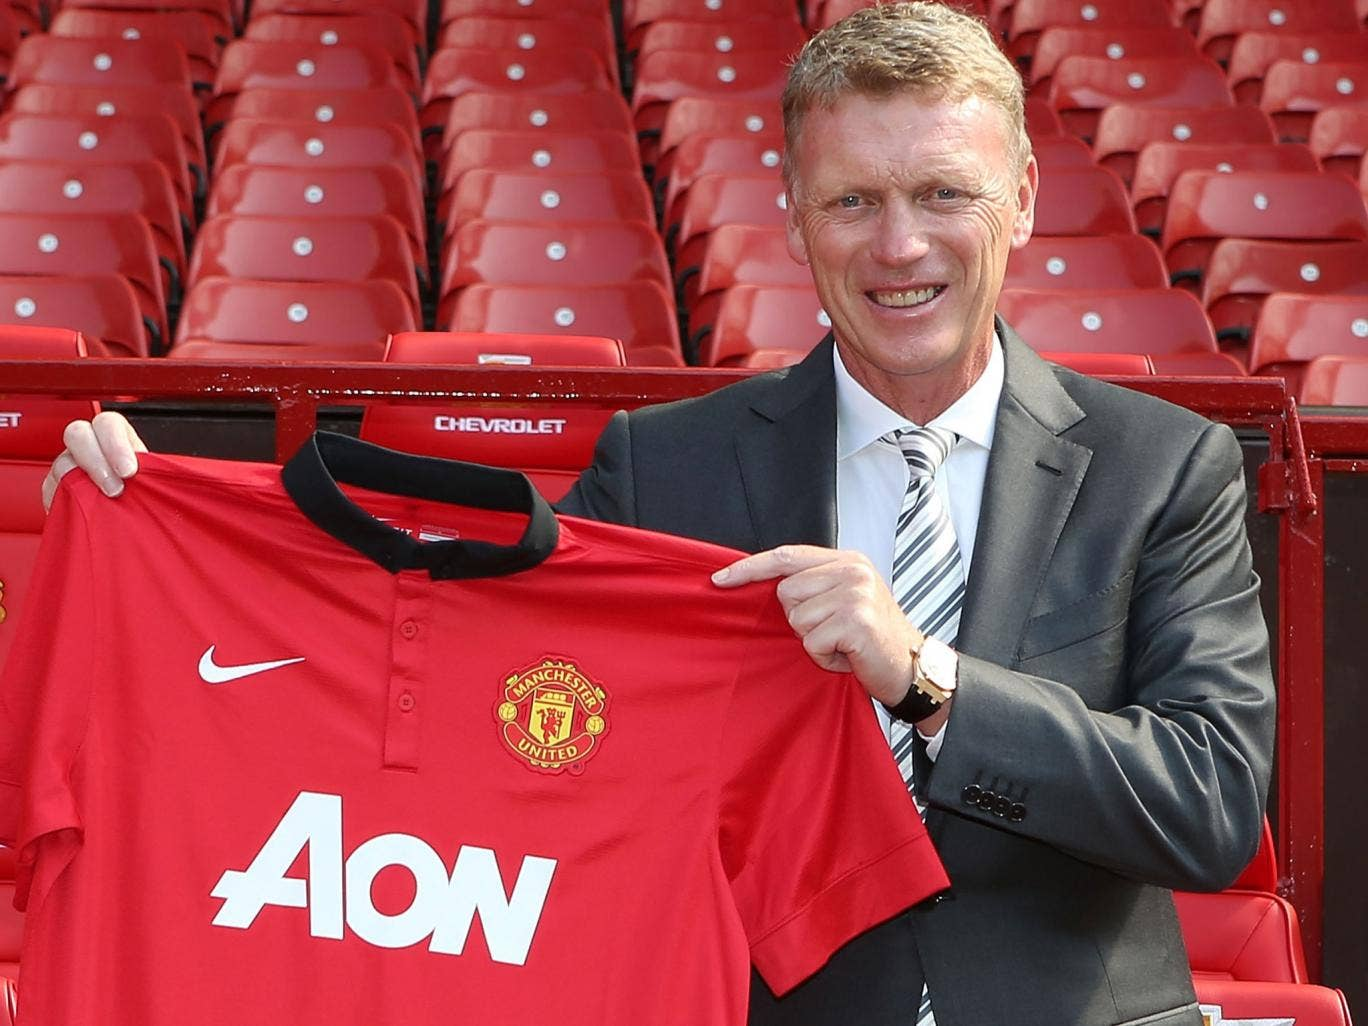 David Moyes has few illusions that the club will show him the kind of patience they had with Sir Alex Ferguson if things go wrong